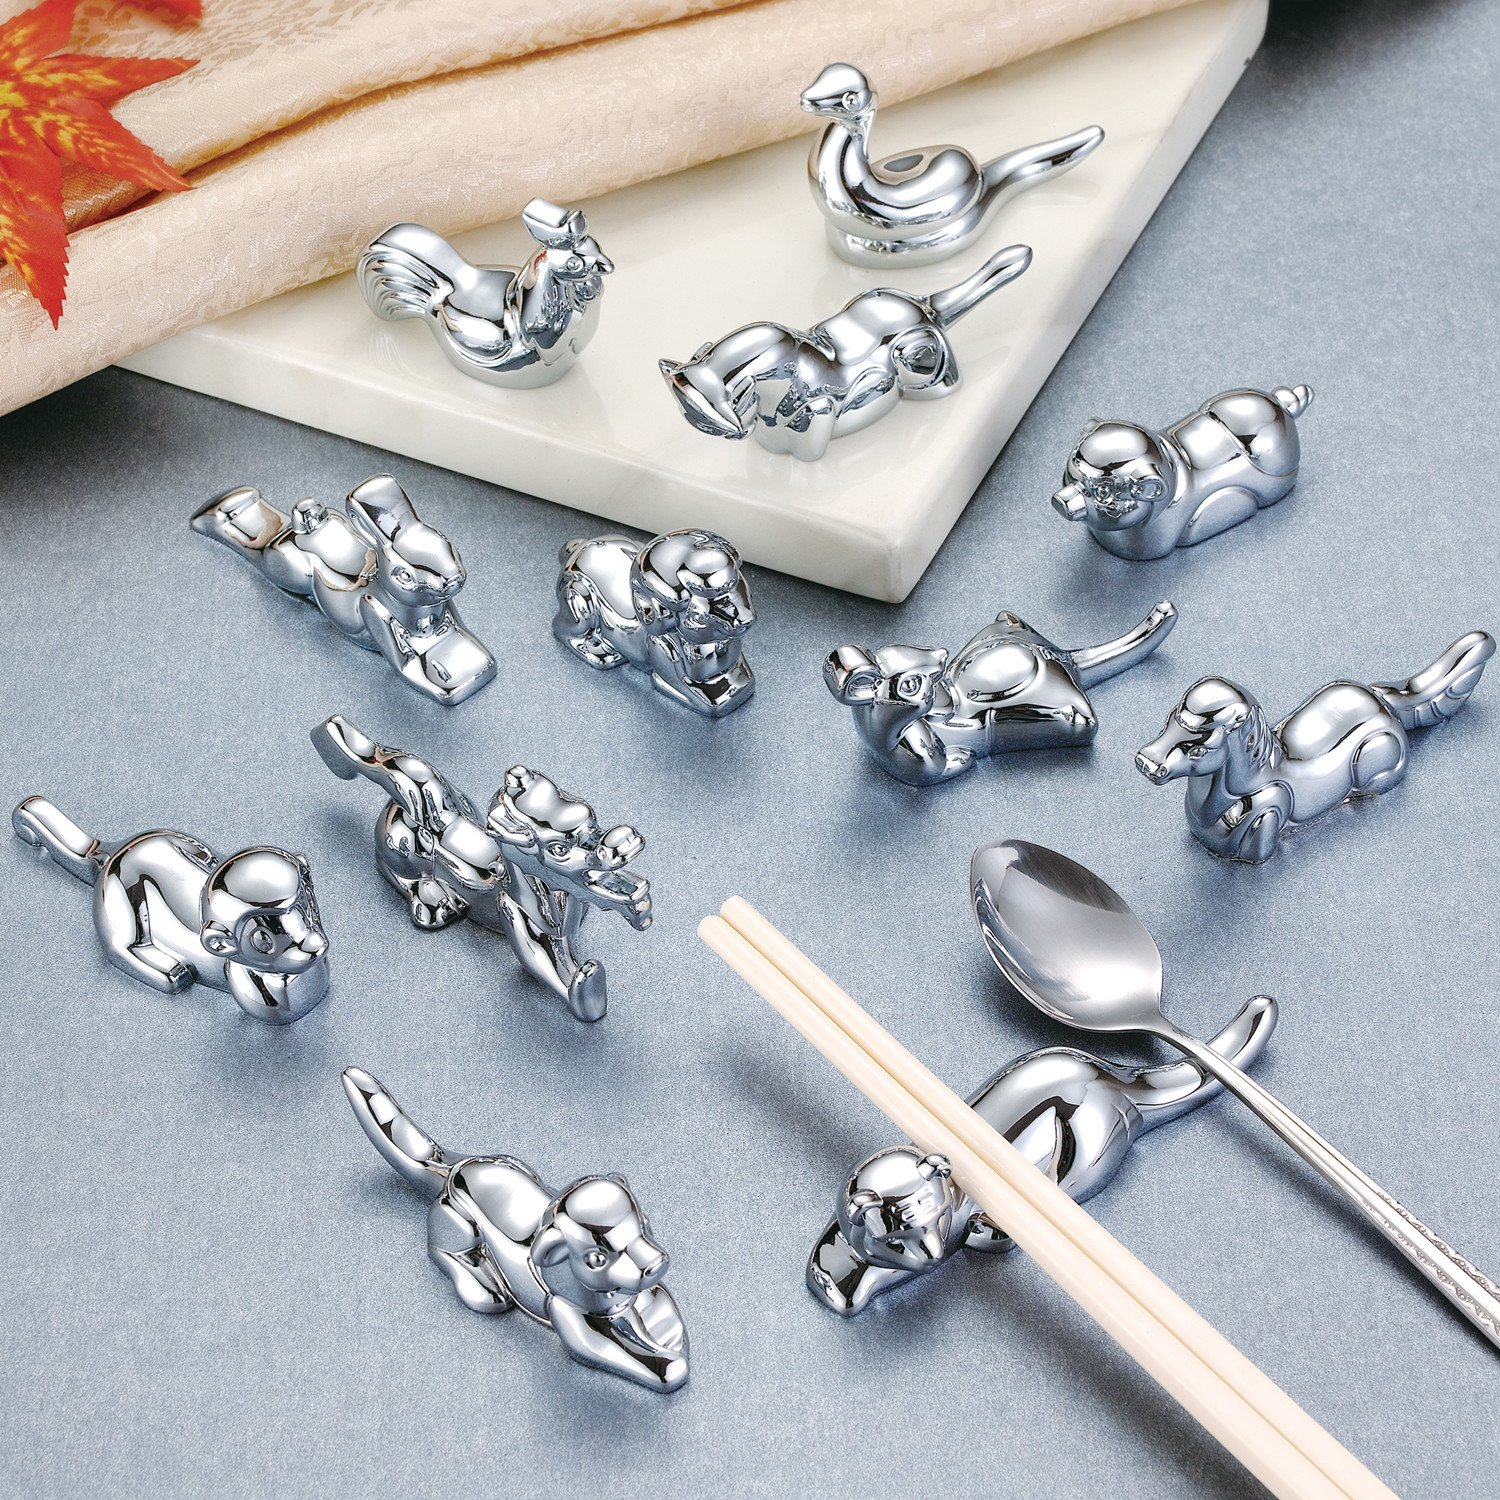 LIUNA Metal Chinese Zodiac Shape Stainless steel Chopstick Holder Rest Dinner Spoon Stand Fork and Knife Holder Animal Crafts Decorations (12 Pcs Chinese Zodiac) by LIU NA